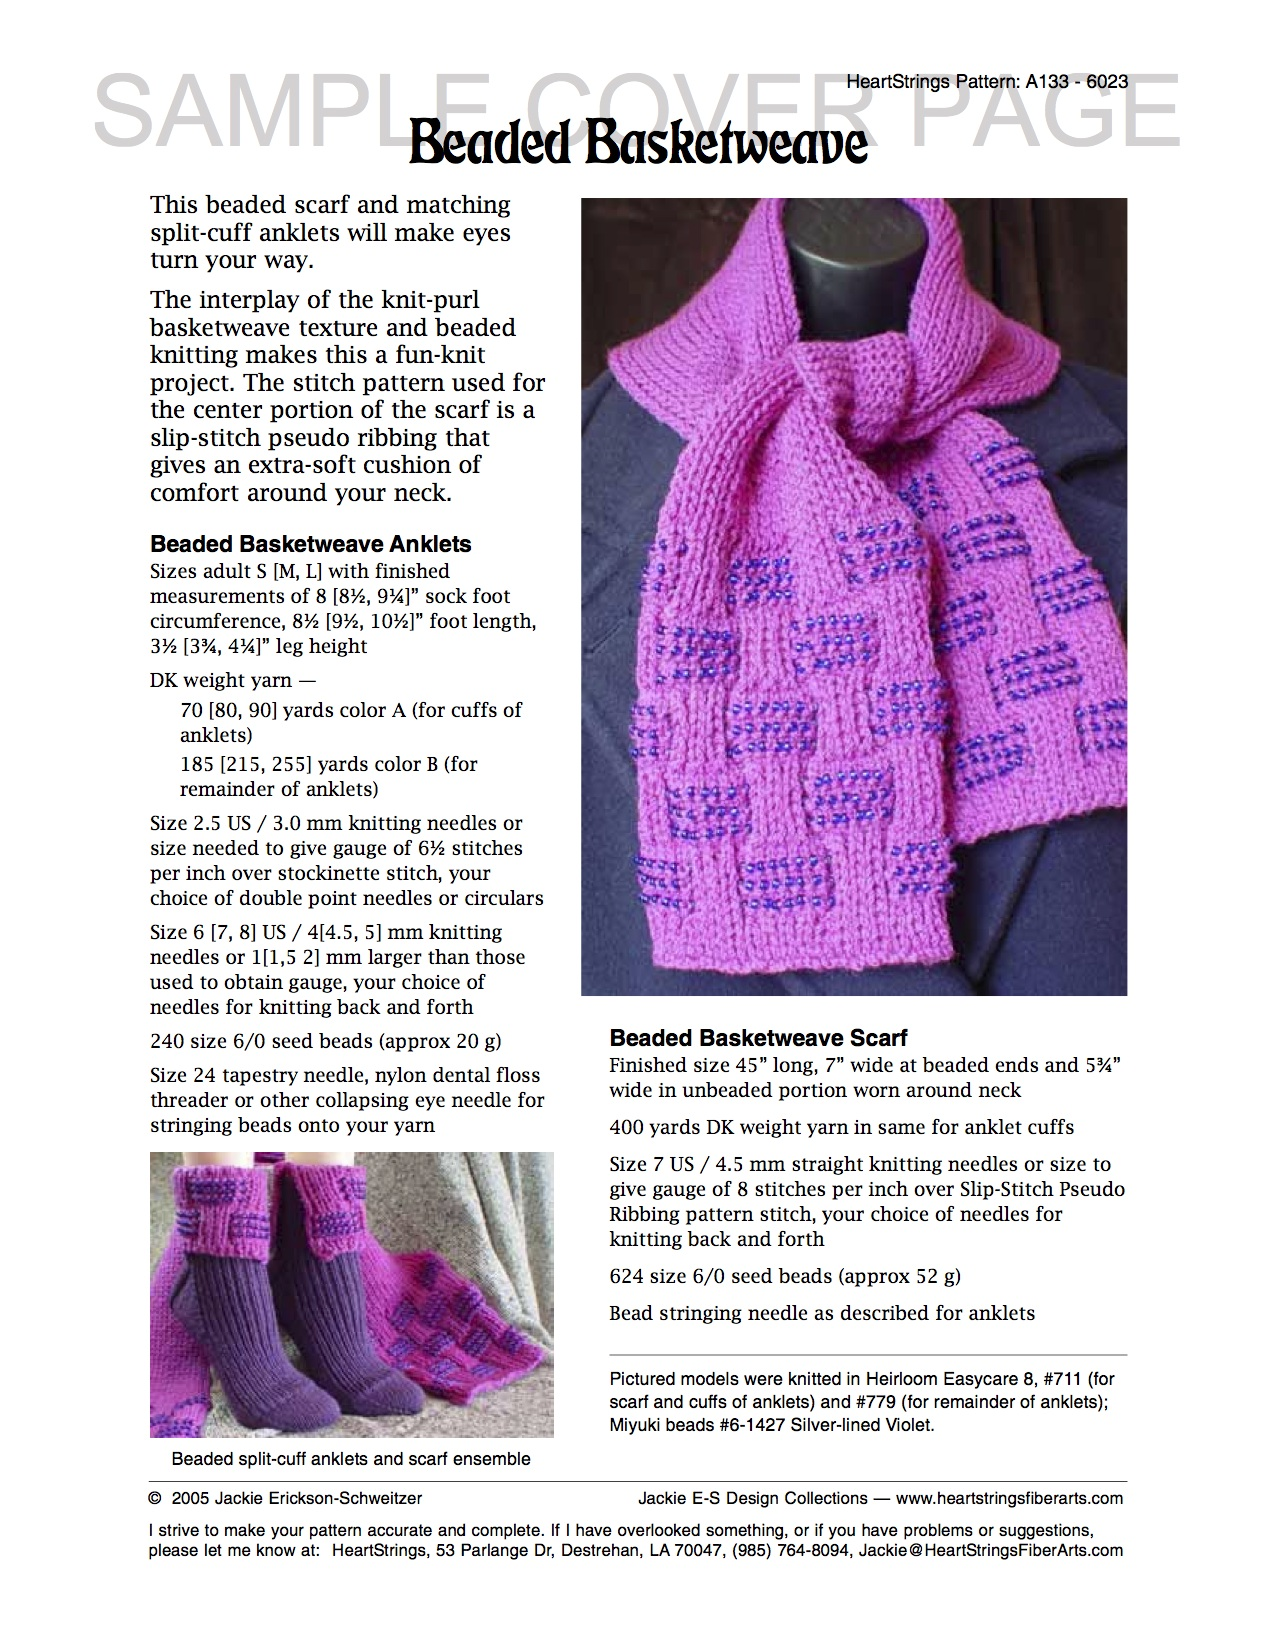 Bits of beads e patterns knit heartstrings learn and knit alongs beaded basketweave scarf and anklets ensemble e pattern bankloansurffo Gallery